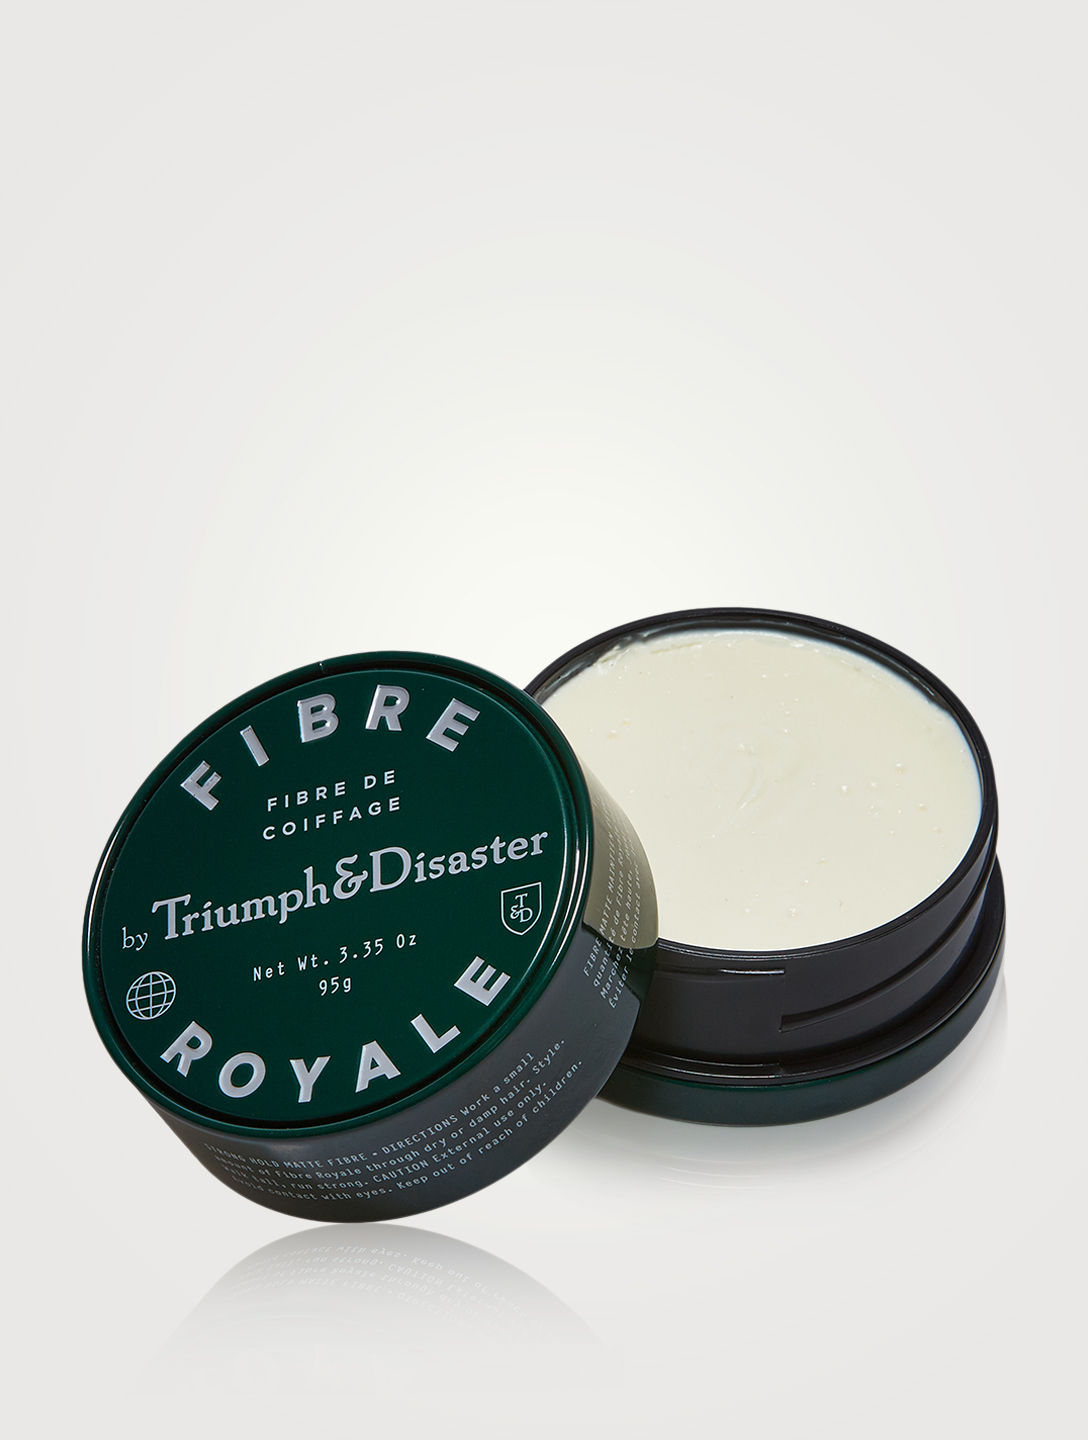 TRIUMPH & DISASTER Fibre Royale Beauté